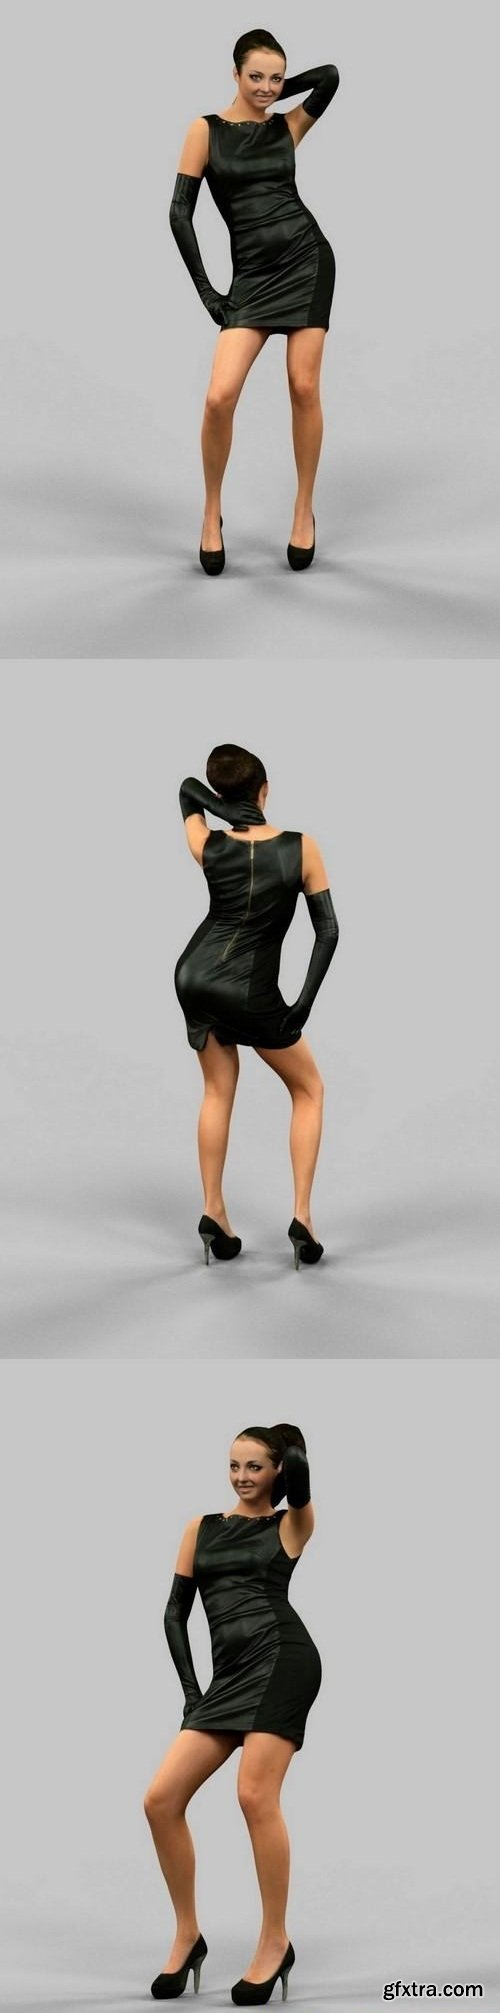 Girl in Leather dress and gloves 3D model